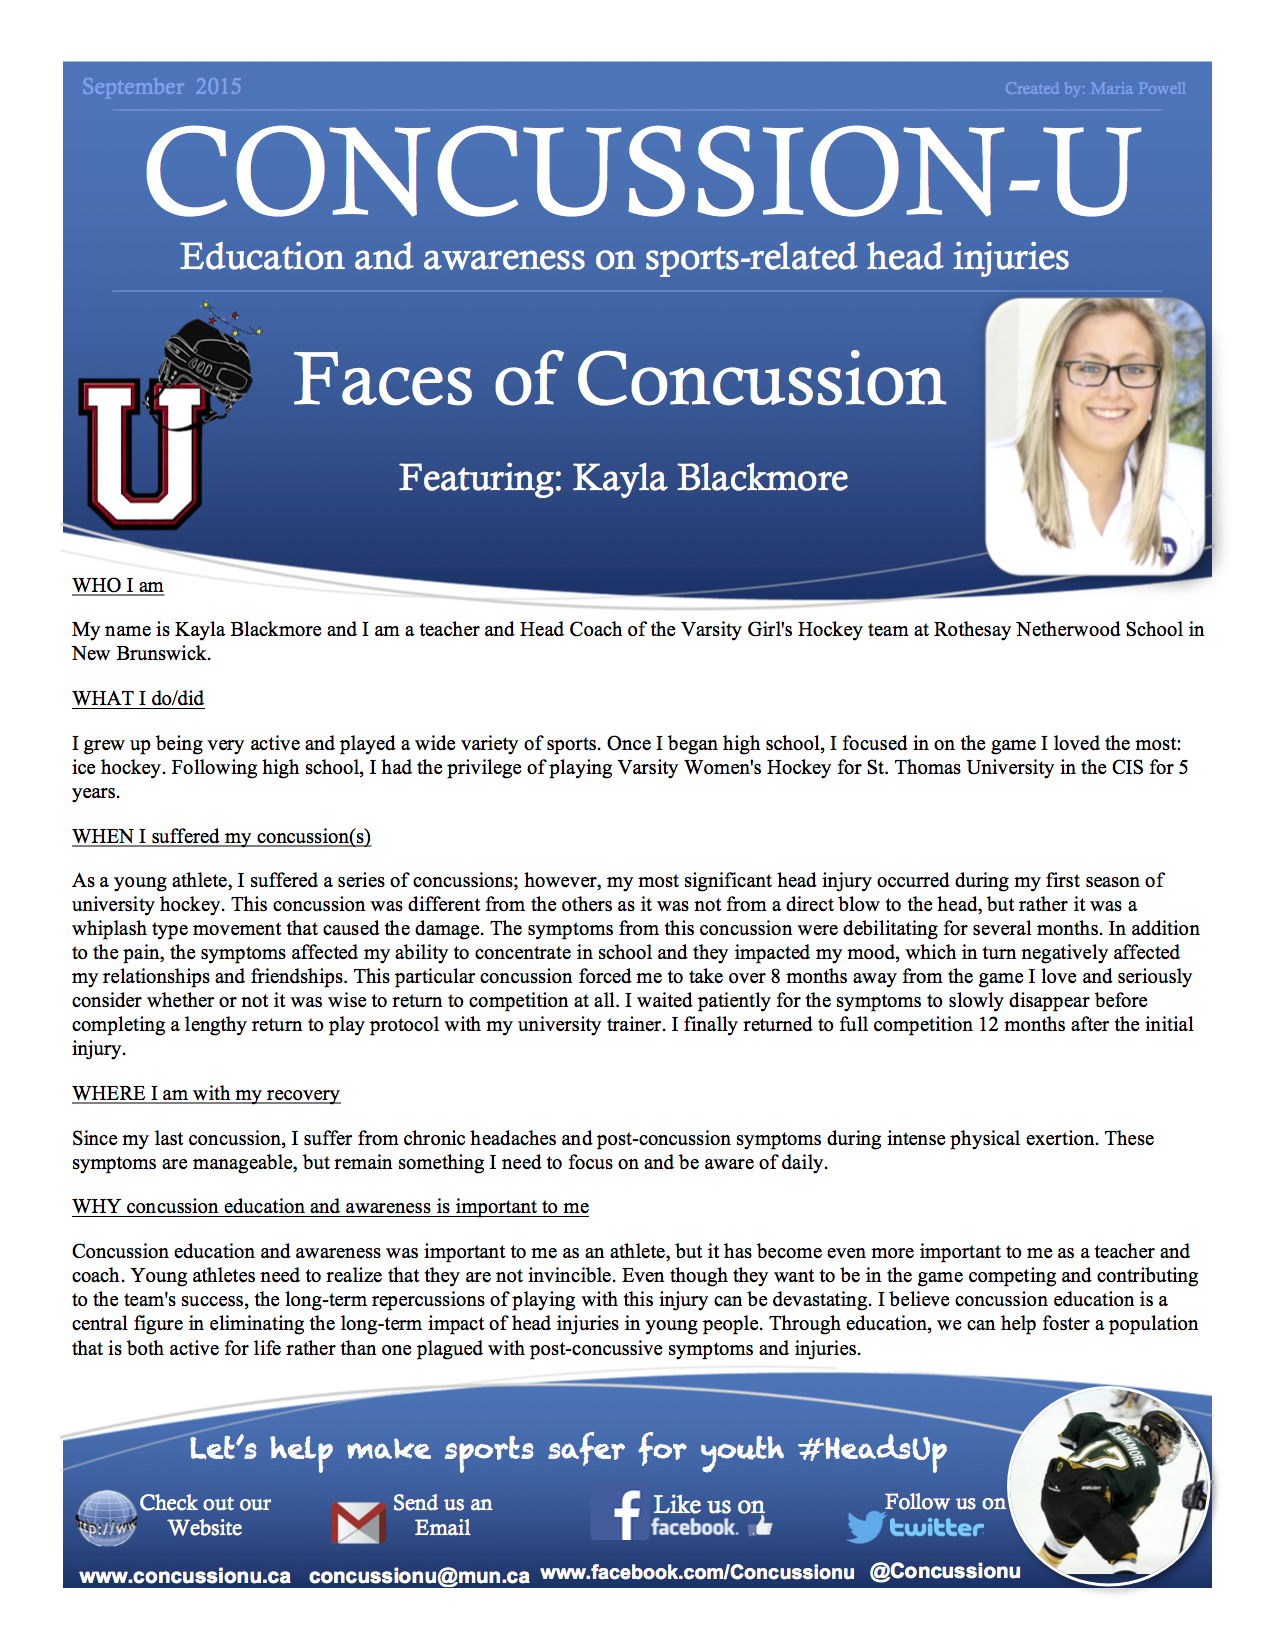 head injuries among athletes and its long term effects Concussions among school-age athletes are being better handled by teaching football players safer tackling techniques and keeping athletes off the field when a head injury is suspected however, more needs to be done, including the banning of dangerous or reckless plays in sports that place people at risk for injuries, sandella said.